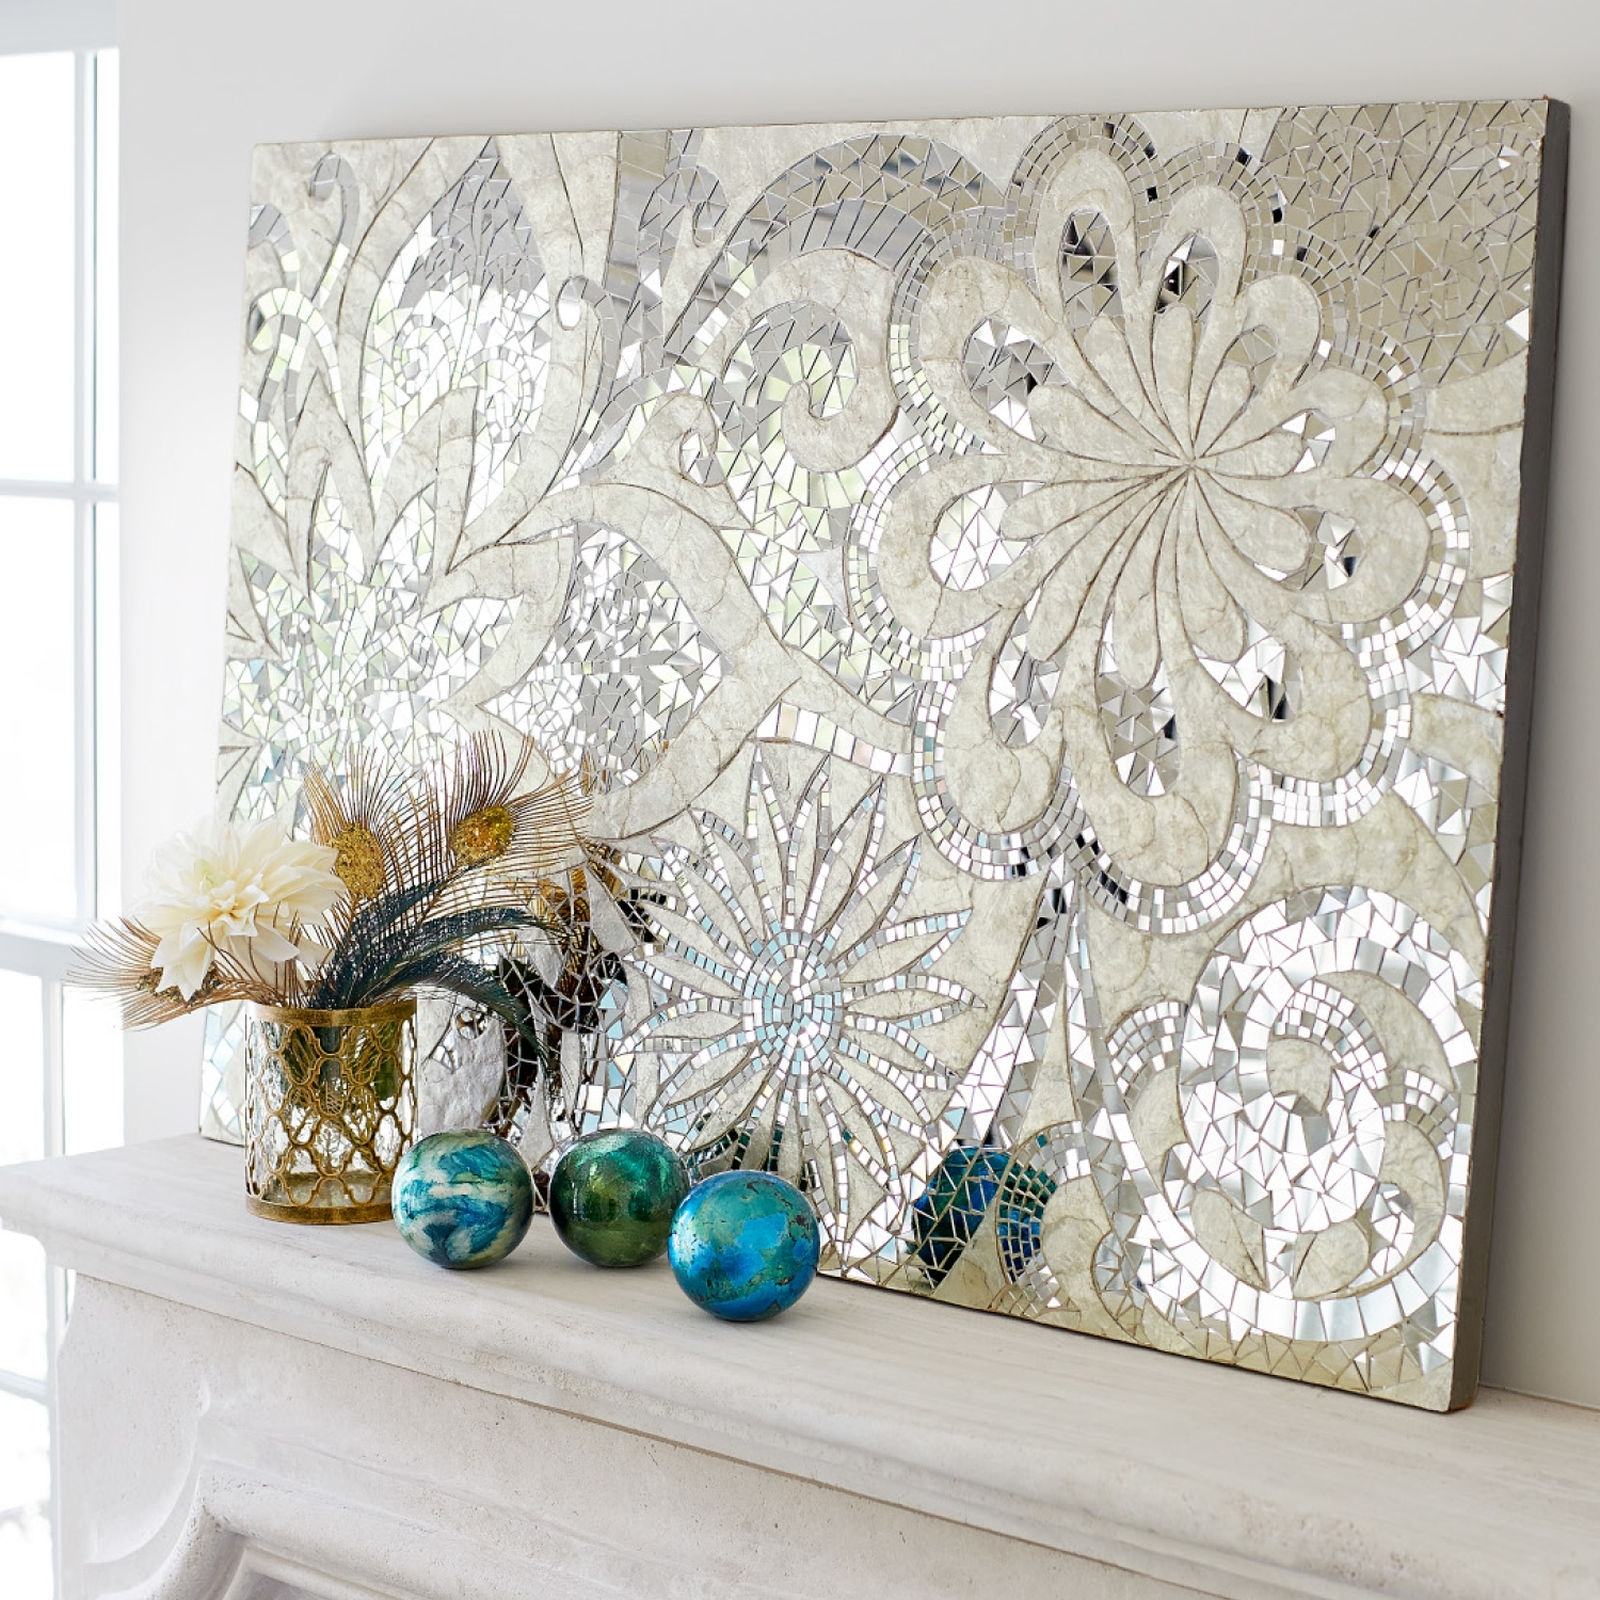 Mirror Tiles, Indonesia And Mosaics Regarding Preferred Mother Of Pearl Wall Art (View 14 of 15)